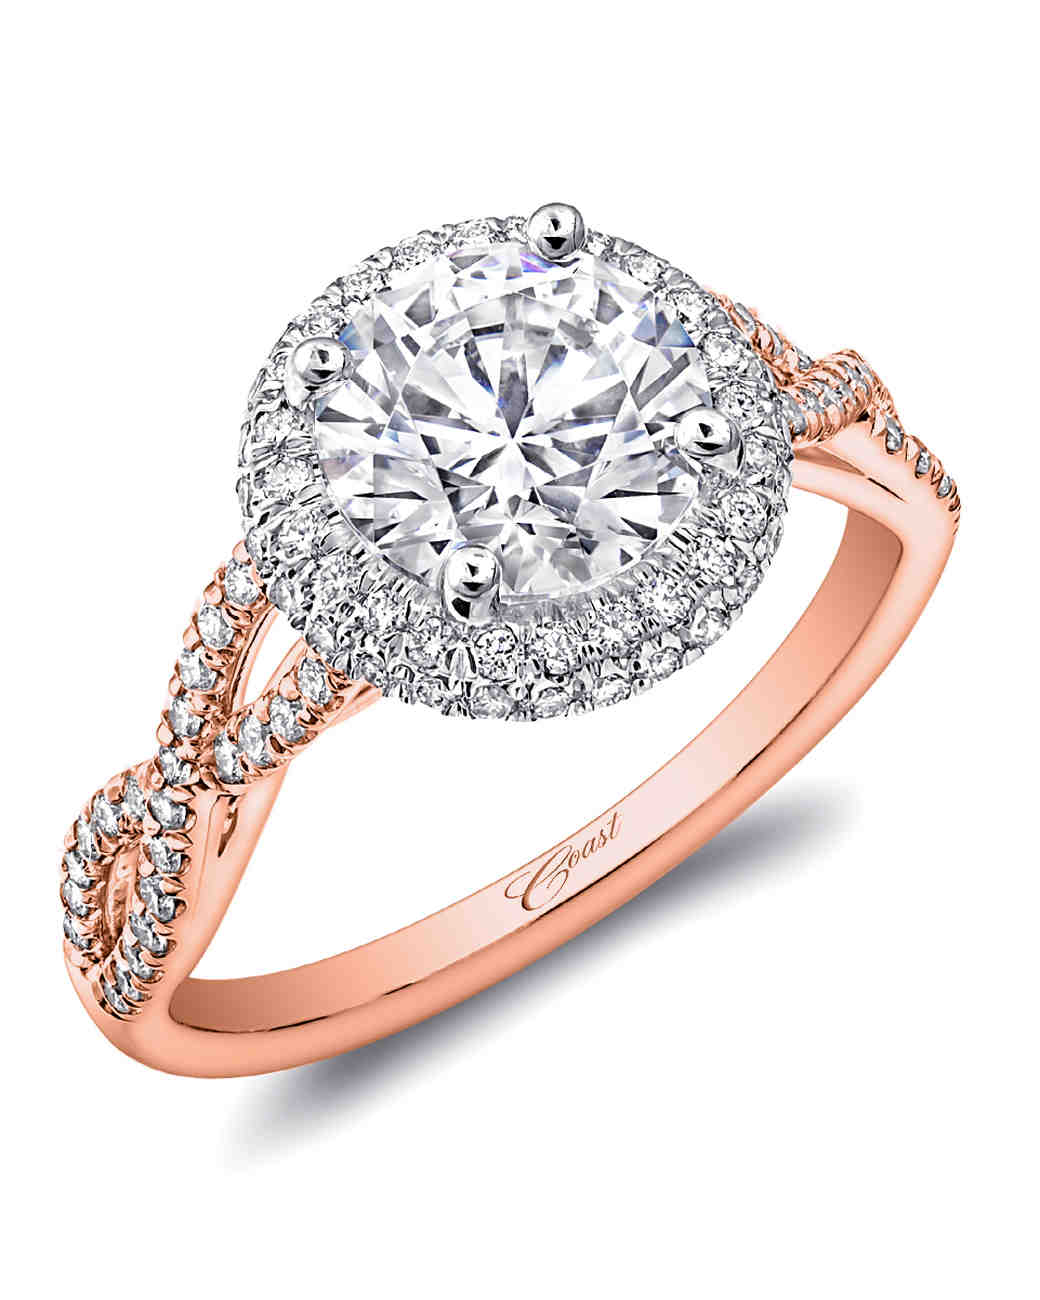 Engagement Rings Gold Coast: 41 Rose Gold Engagement Rings We Love